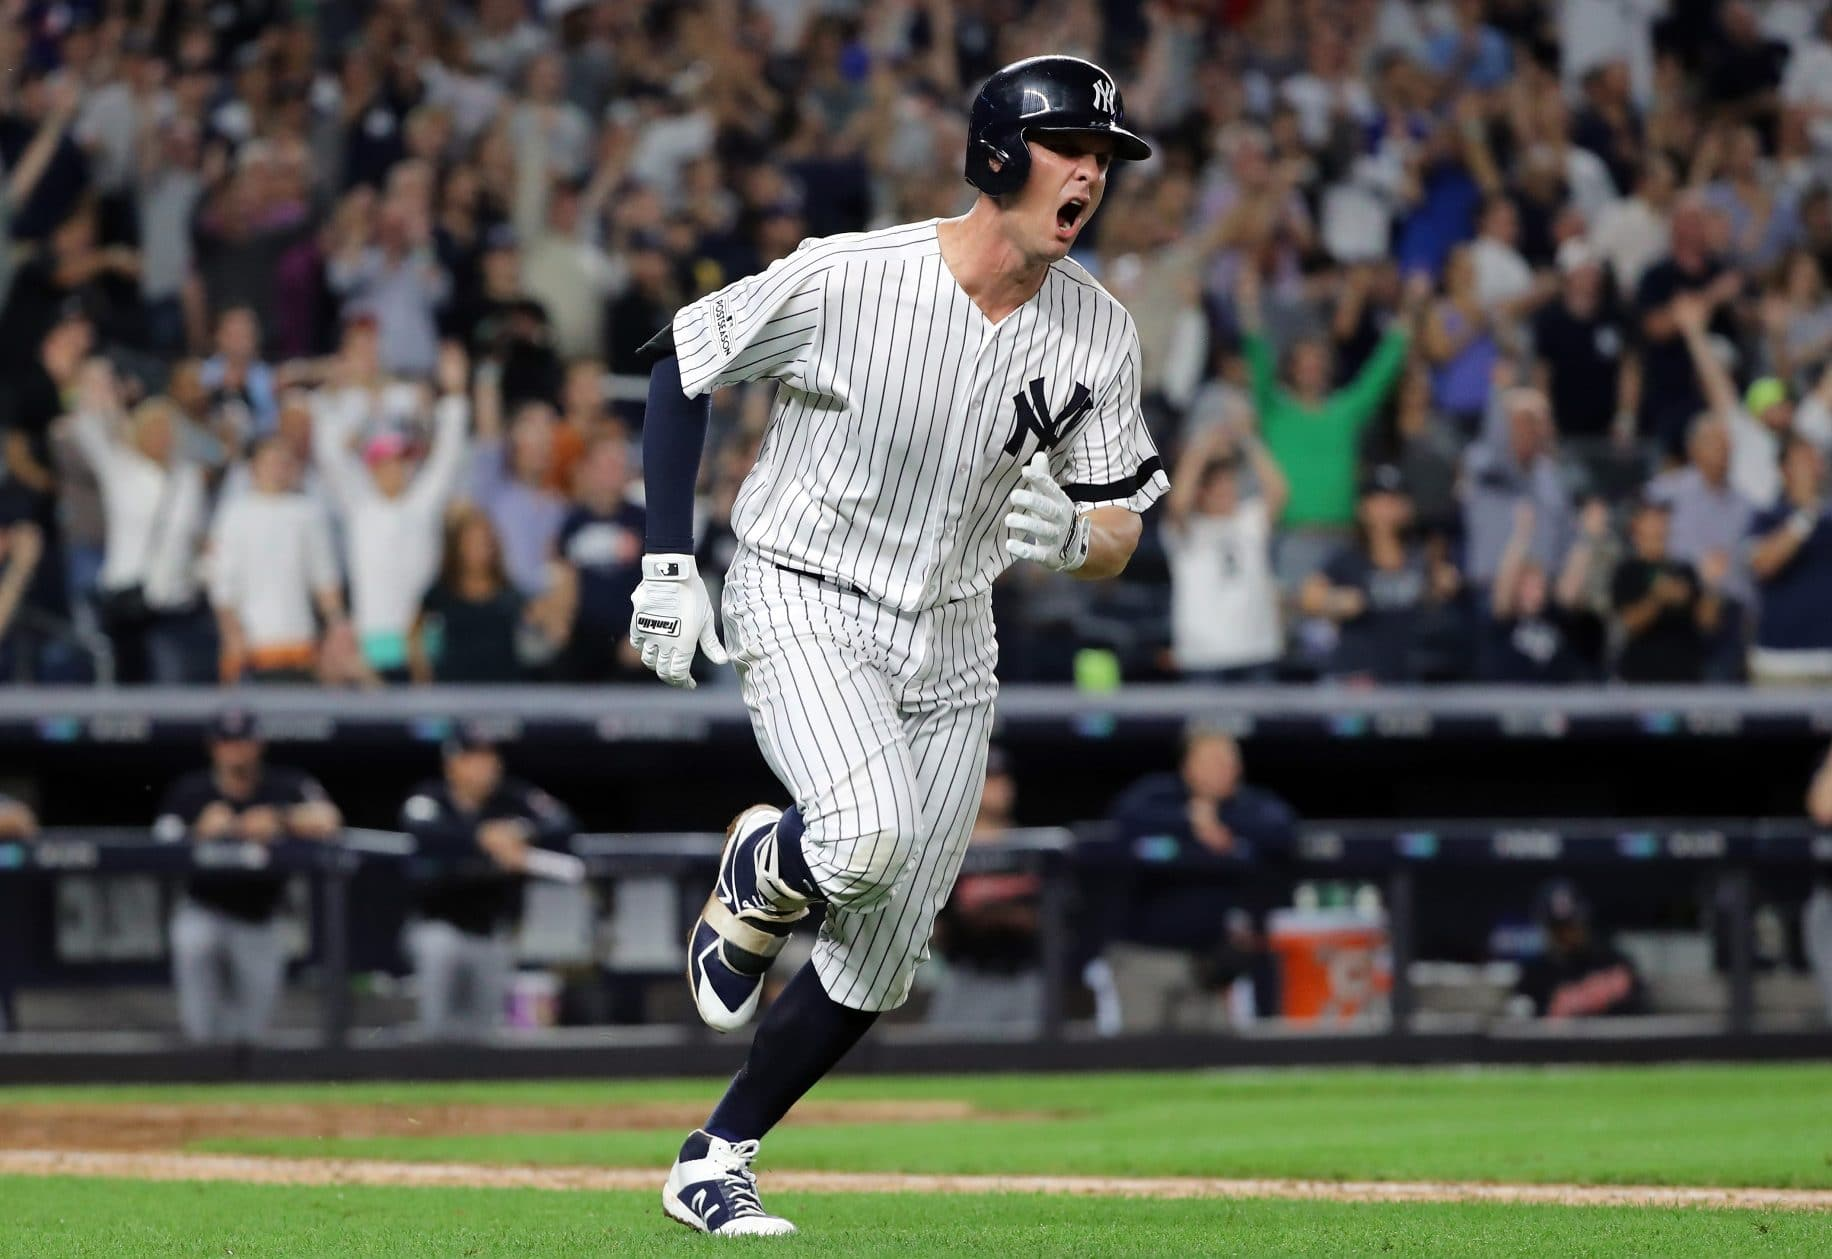 New York Yankees: Why Greg Bird's Game 3 Performance Stands Out